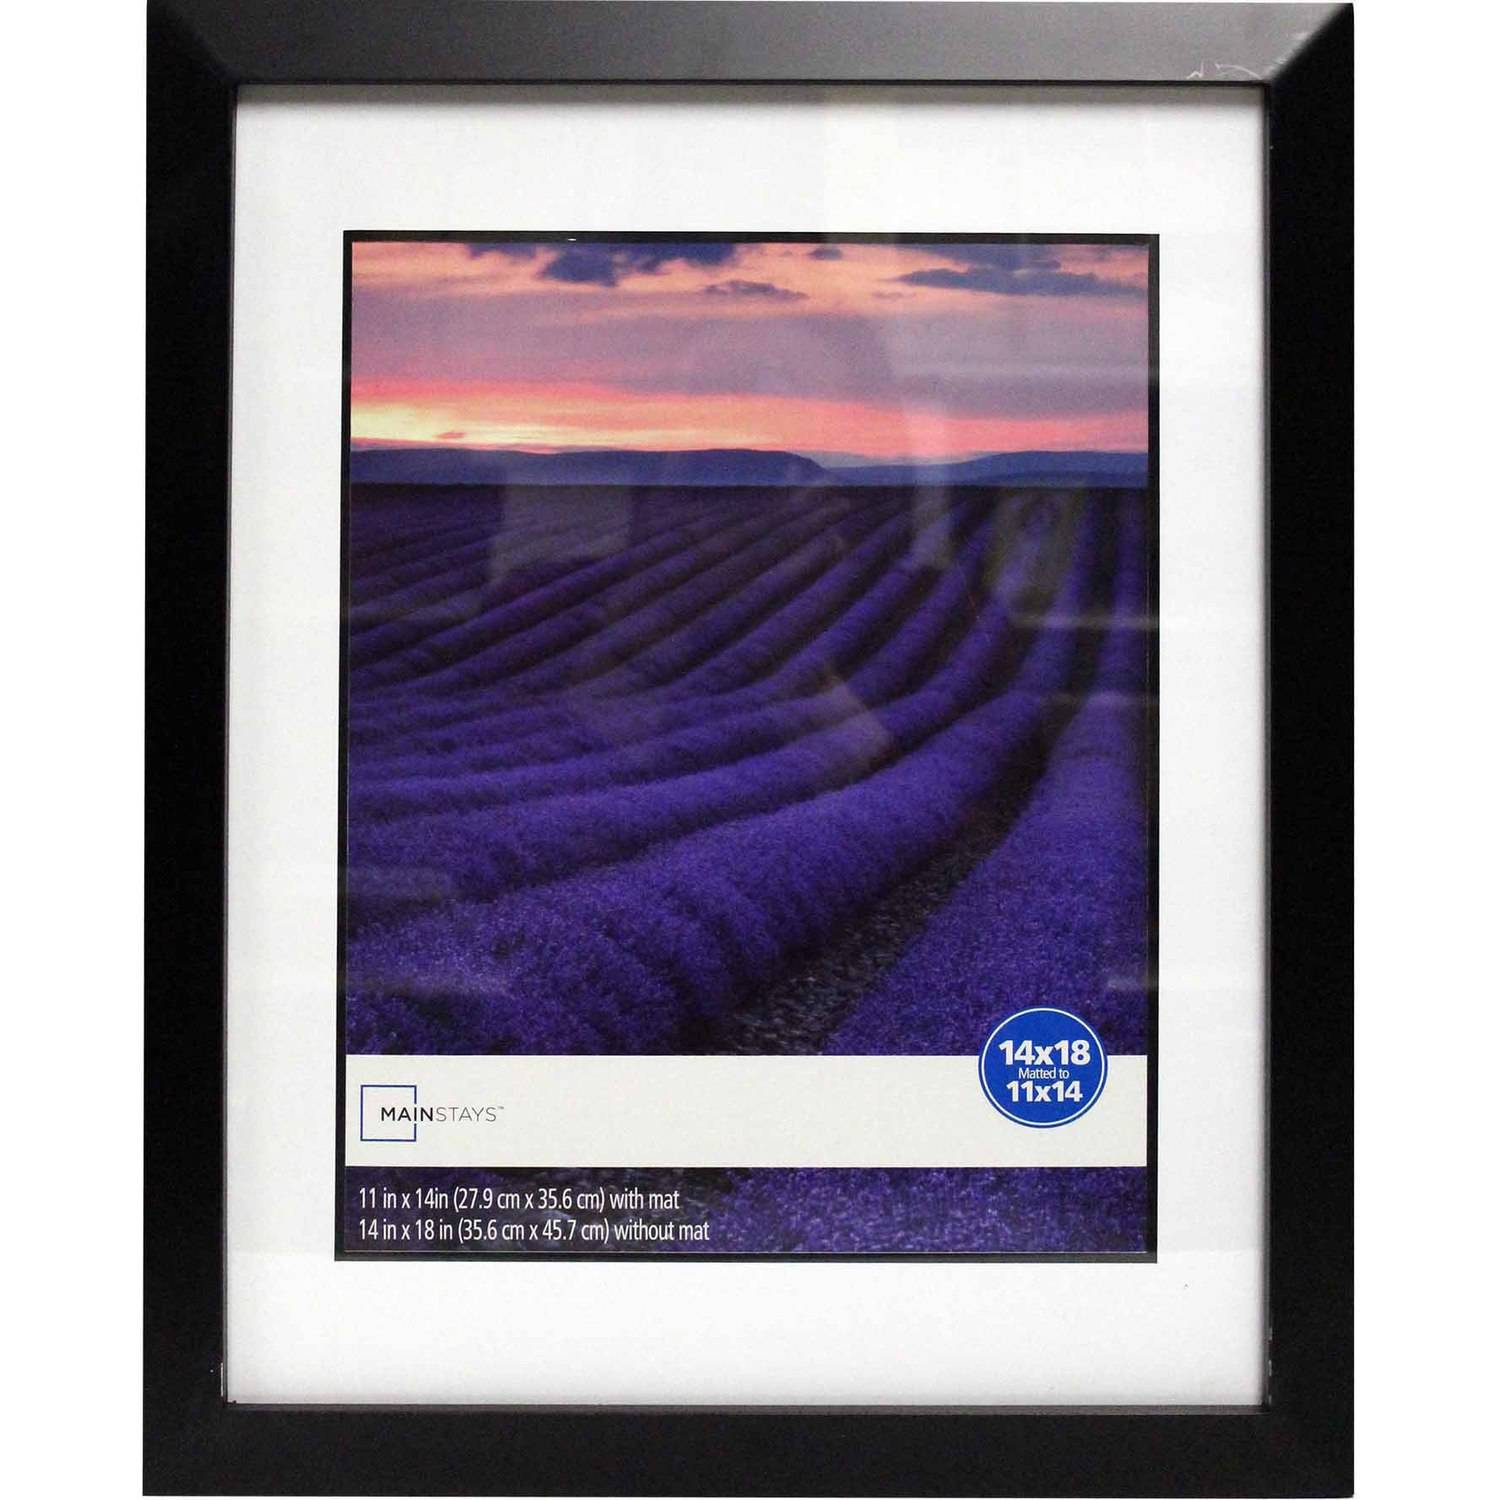 Mainstays Wide Picture Frame 14x18 Matted To 11x14